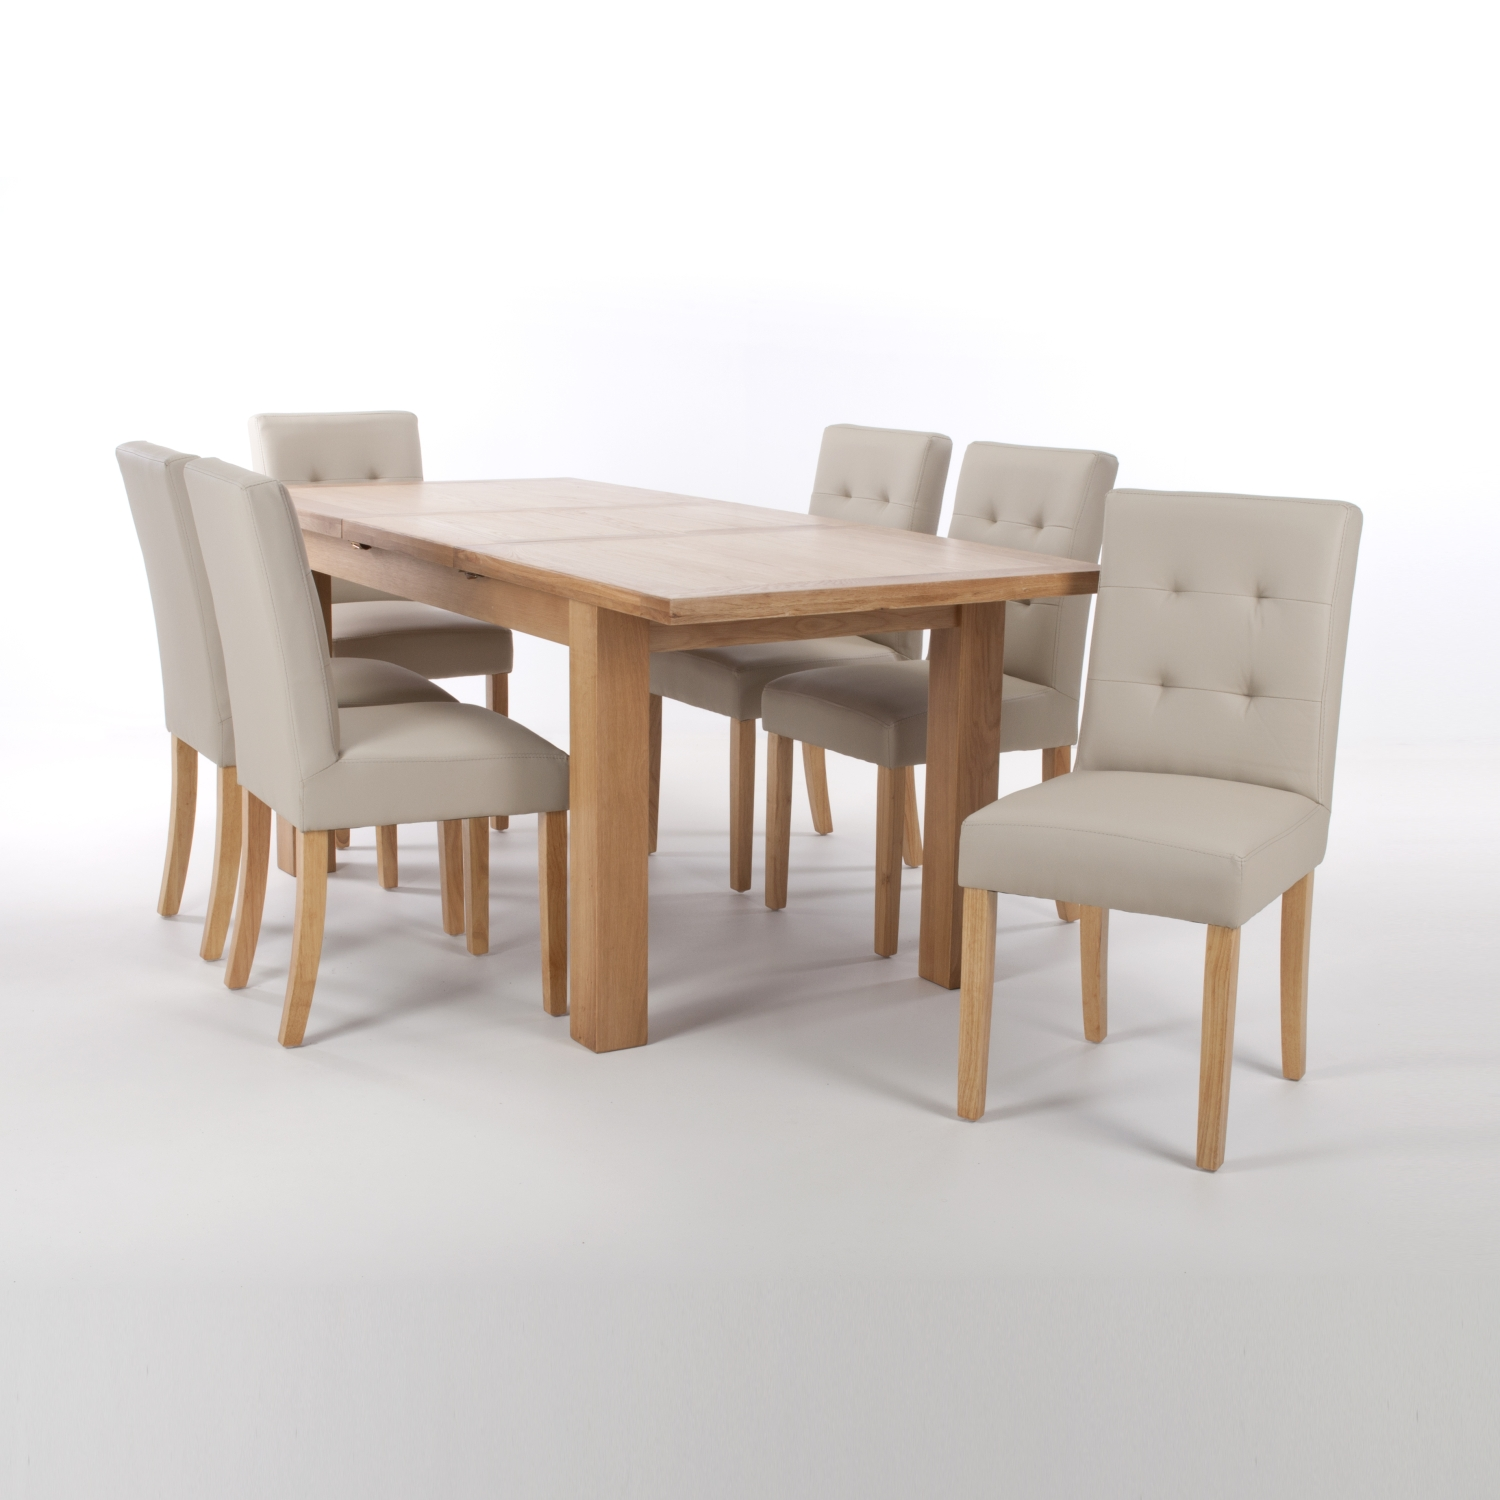 Solid Oak Extendable Dining Table with 6 Stitched Back Chairs in Matt Leather Effect Black with Natural legs